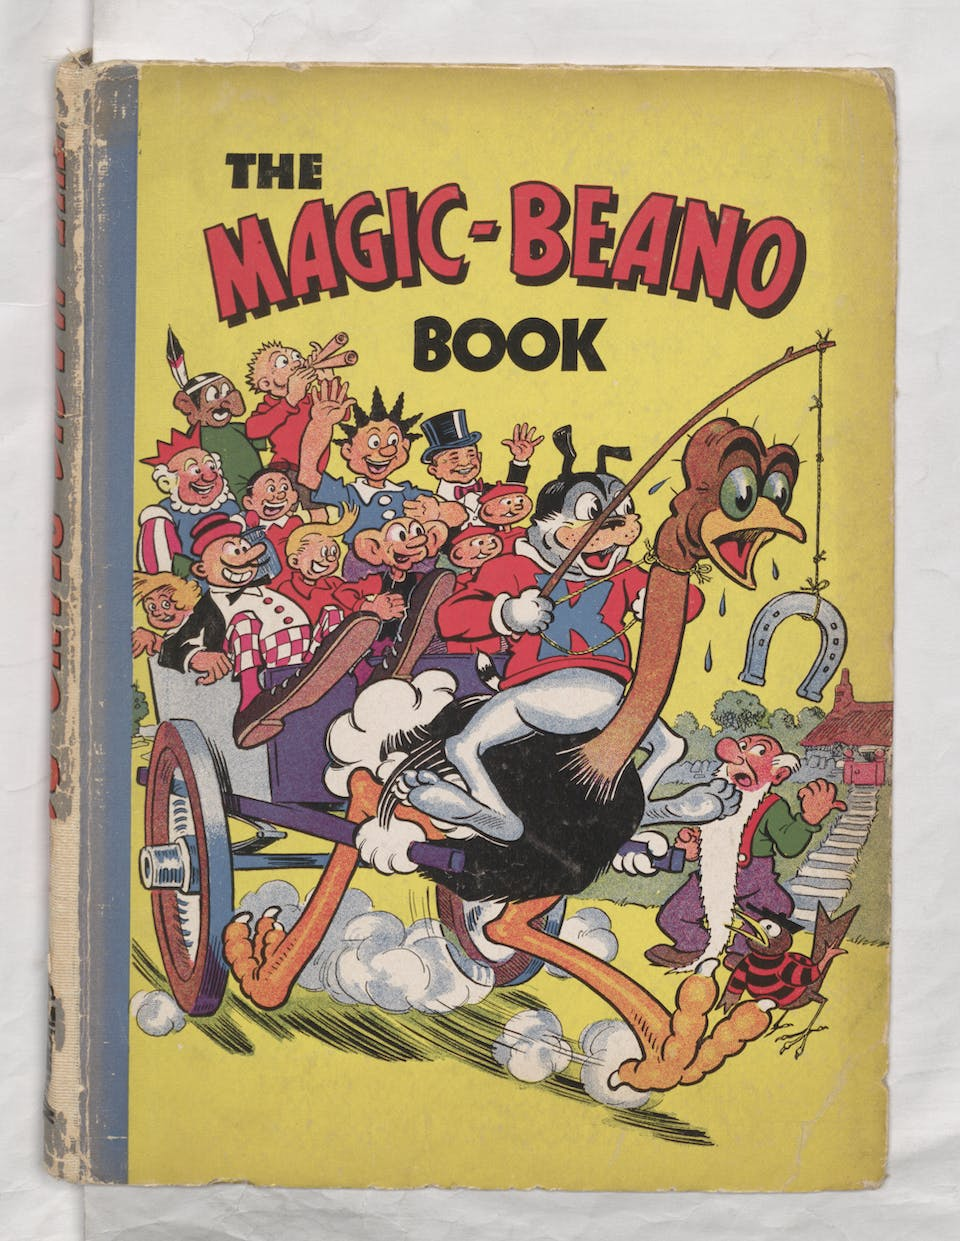 1946 Magic-Beano Book - Annual Cover